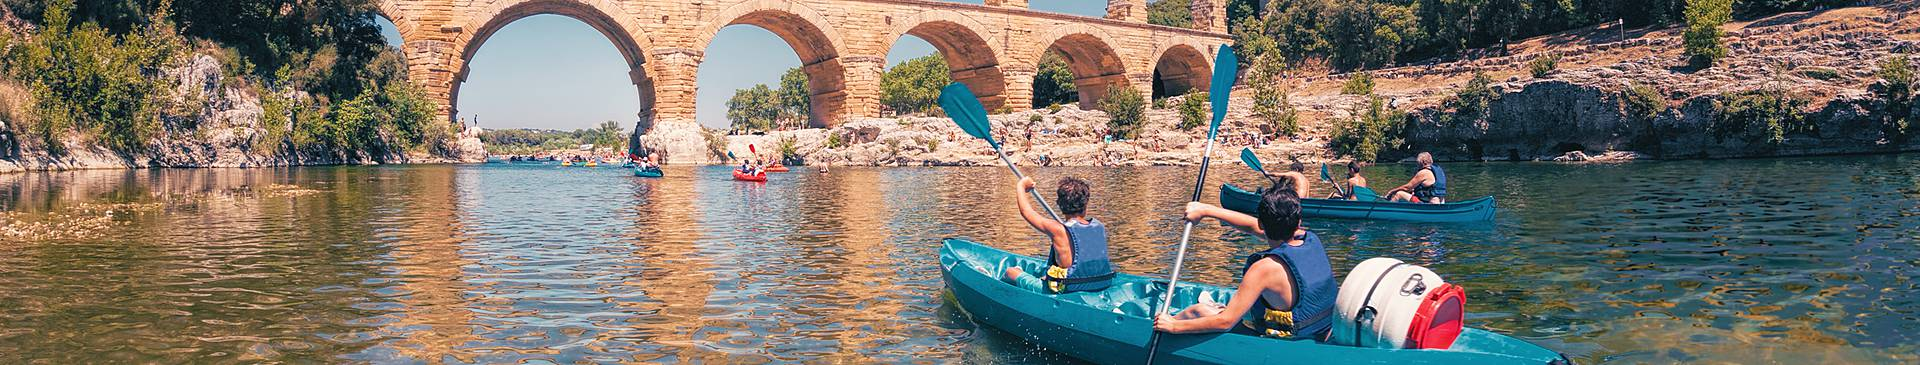 Adventure travel in France